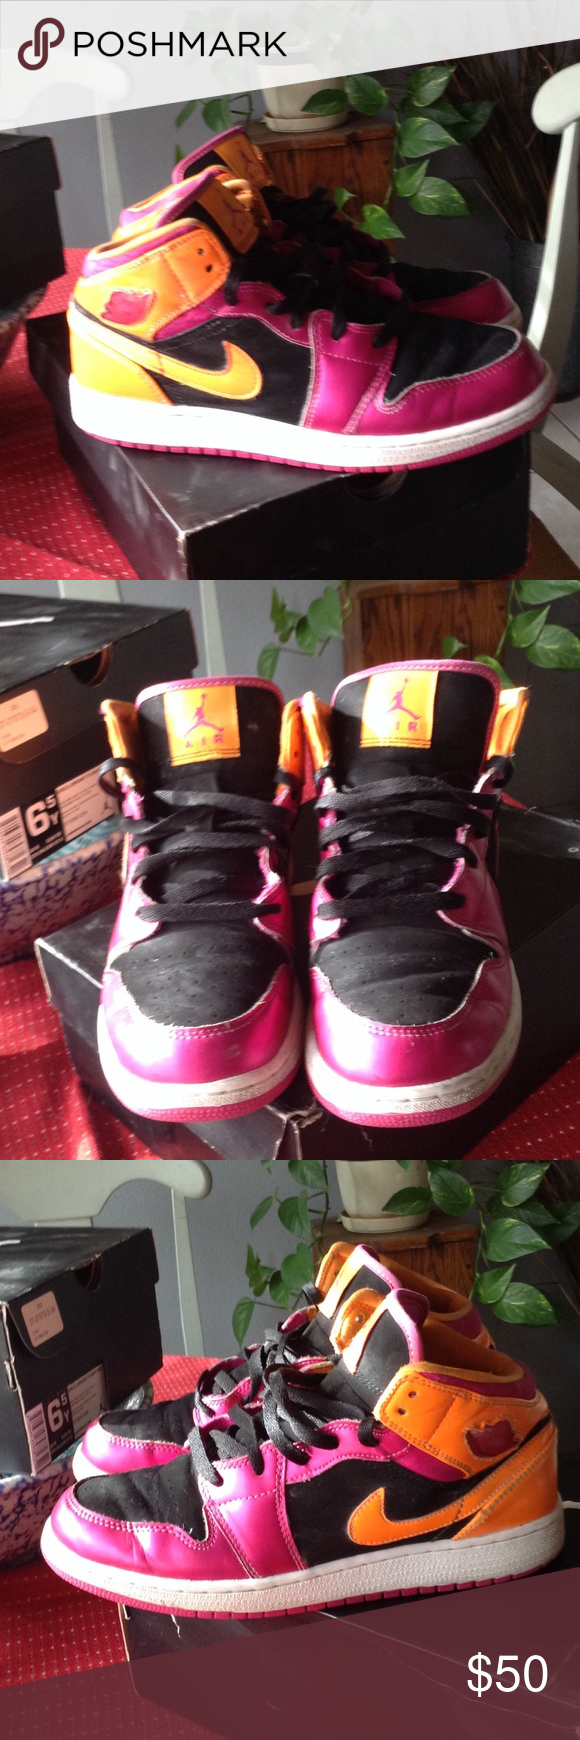 new style d6ddd a596e Women s Air Jordan 1 Mid Super cute shoes 💖 Very well taken care of  women s  girl s Air Jordan with box still. Colors of shoe are Black Fusion  Pink-Bright ...